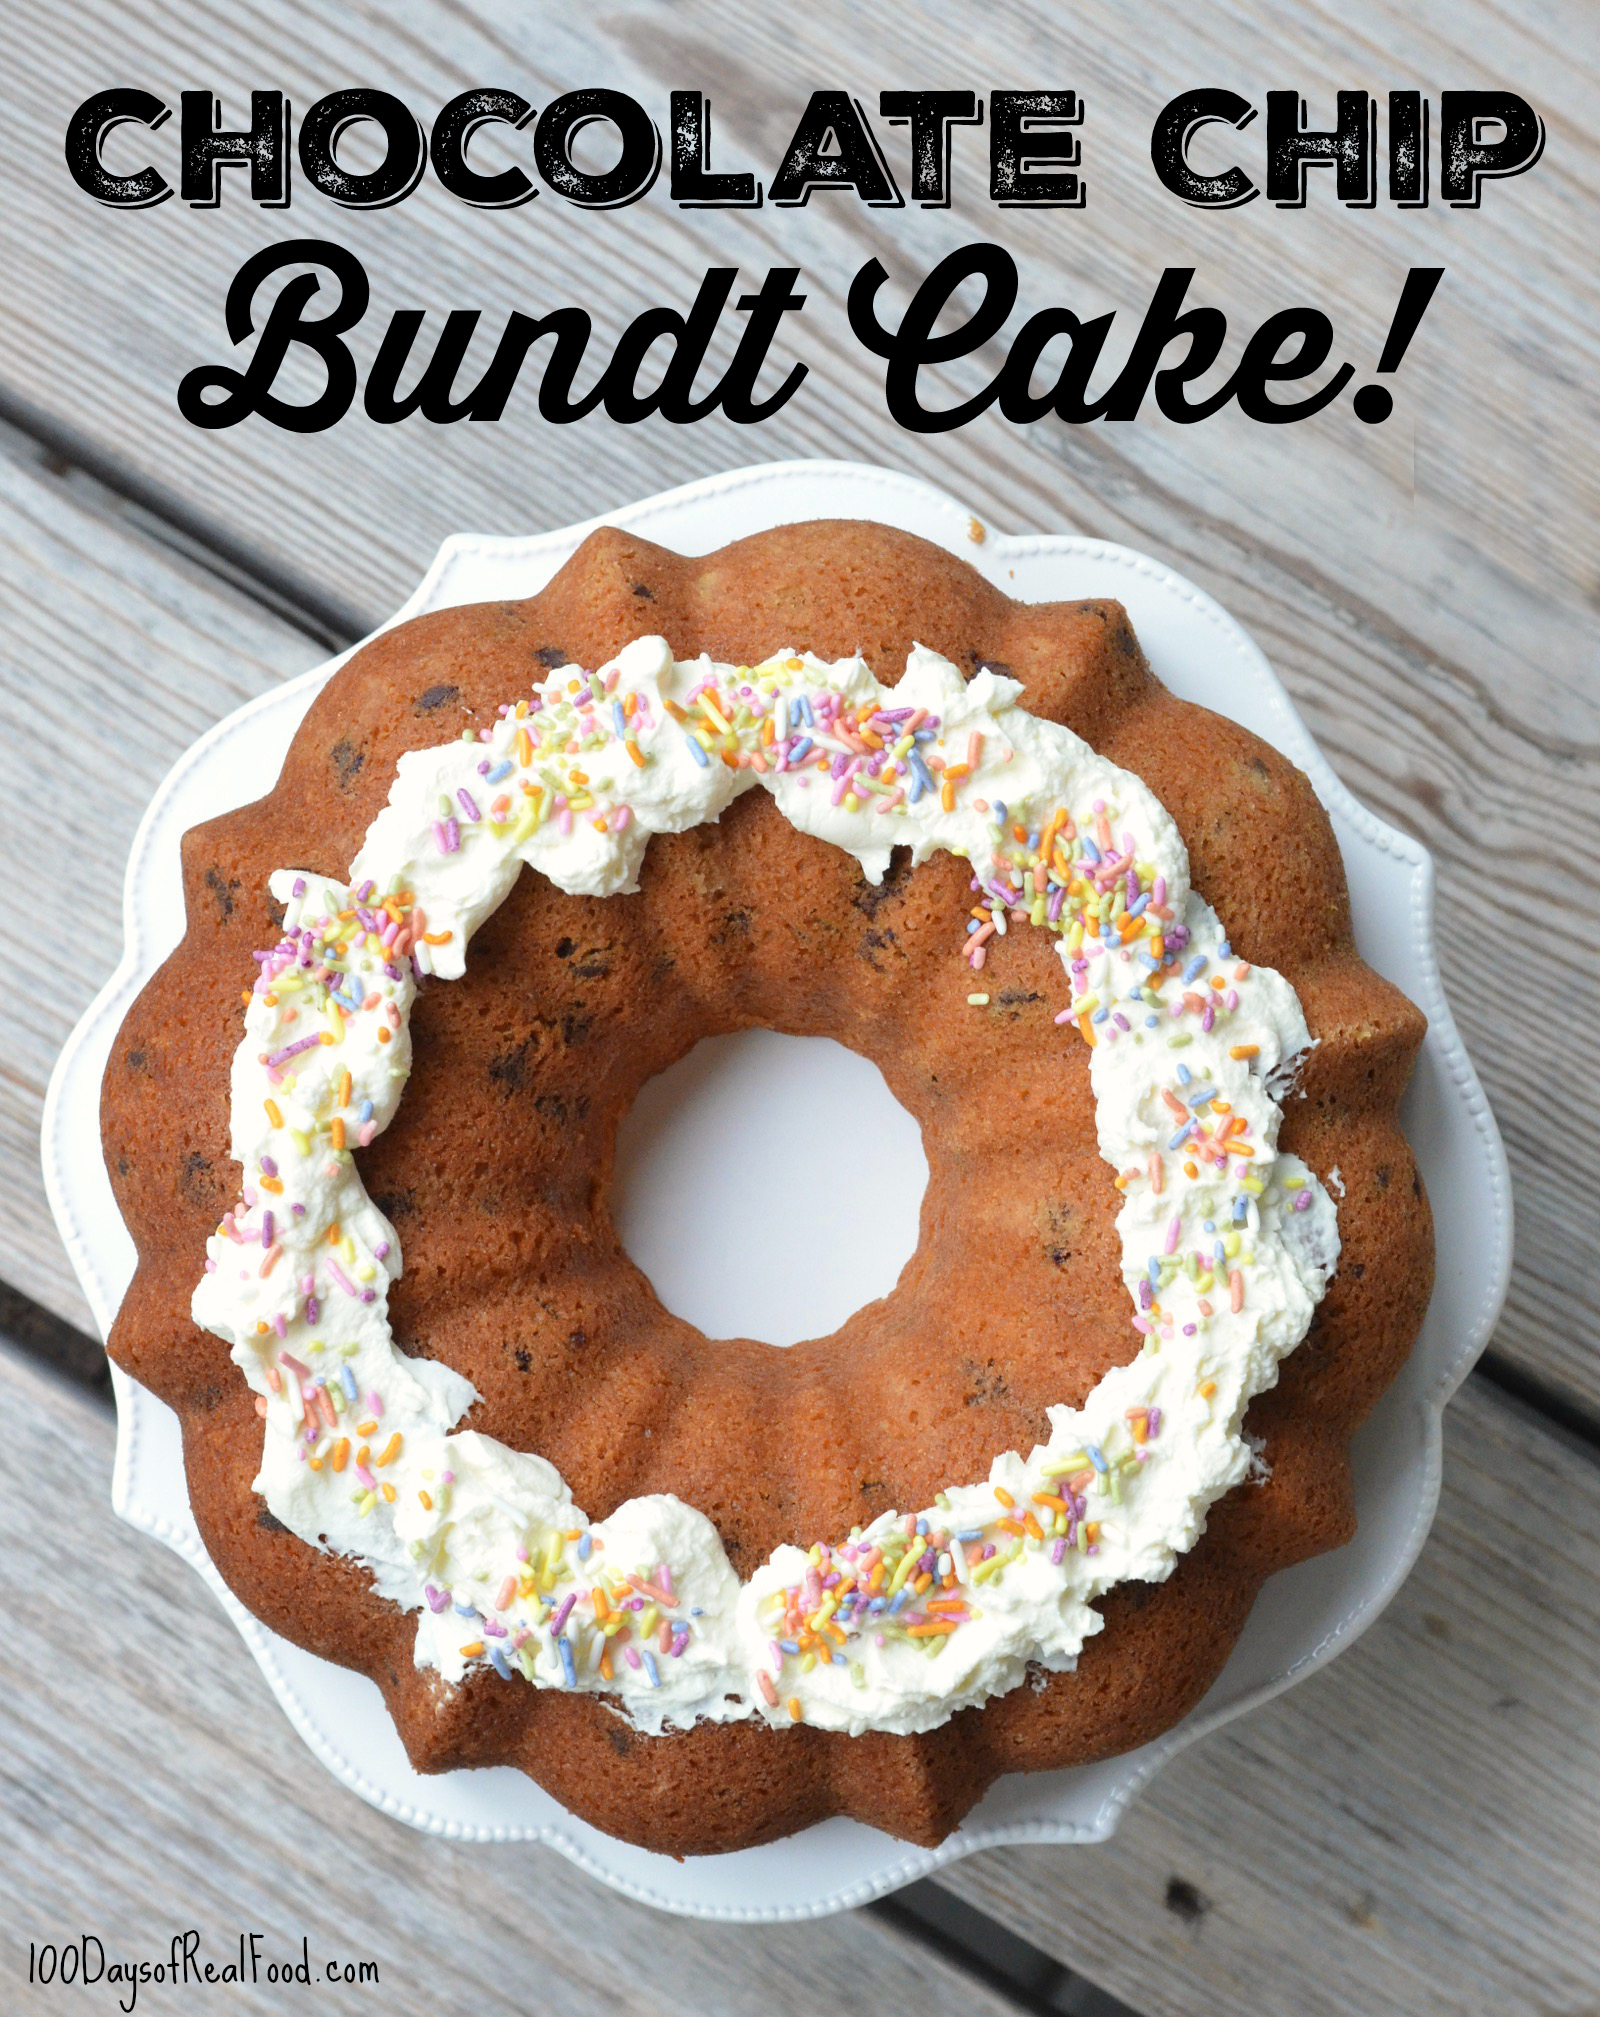 Chocolate Chip Bundt Cake on 100 Days of Real Food